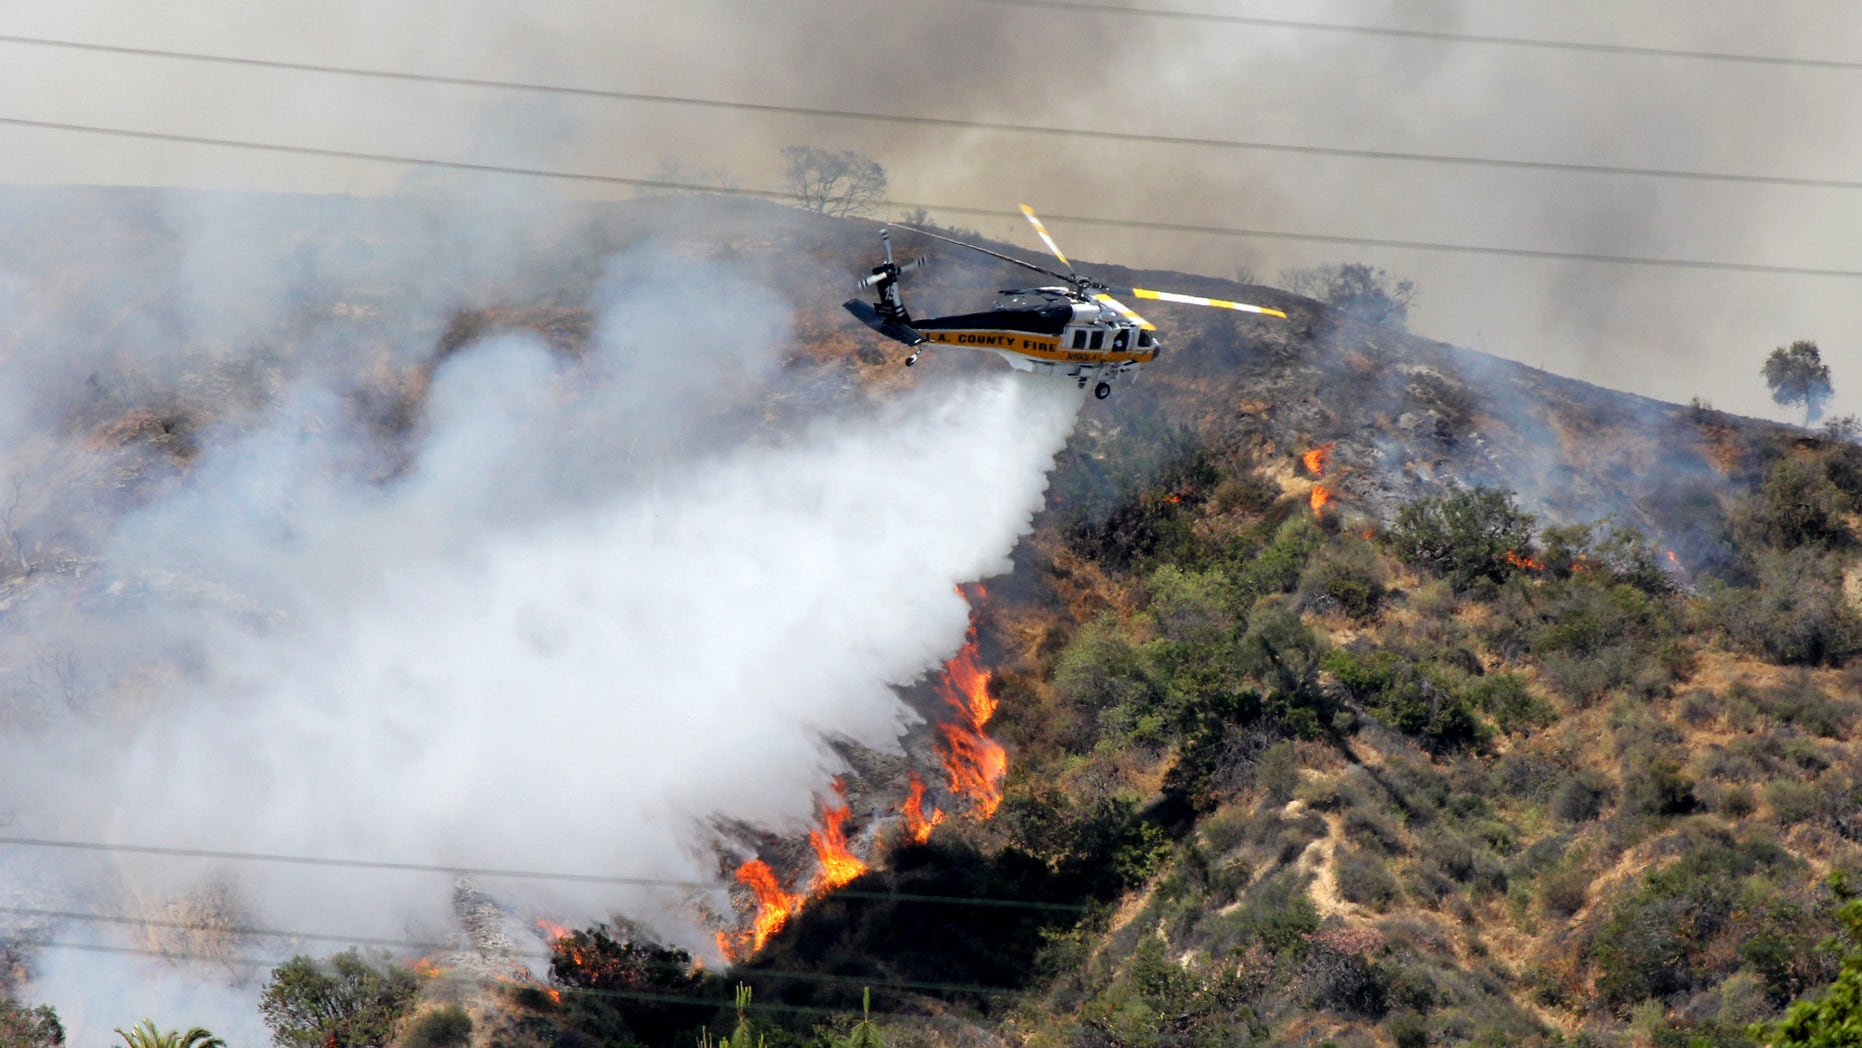 FILE - This Saturday April 20,2013 file photo shows a Los Angeles County Fire Department helicopter droping water on a fire burning on the foothills of the San Gabriel Mountains in Monrovia, Calif. Authorities say California is facing a dangerous wildfire season due to a dry winter that has left the normally green hills of spring parched and tinder-dry. (AP Photo/John Antczak,File)